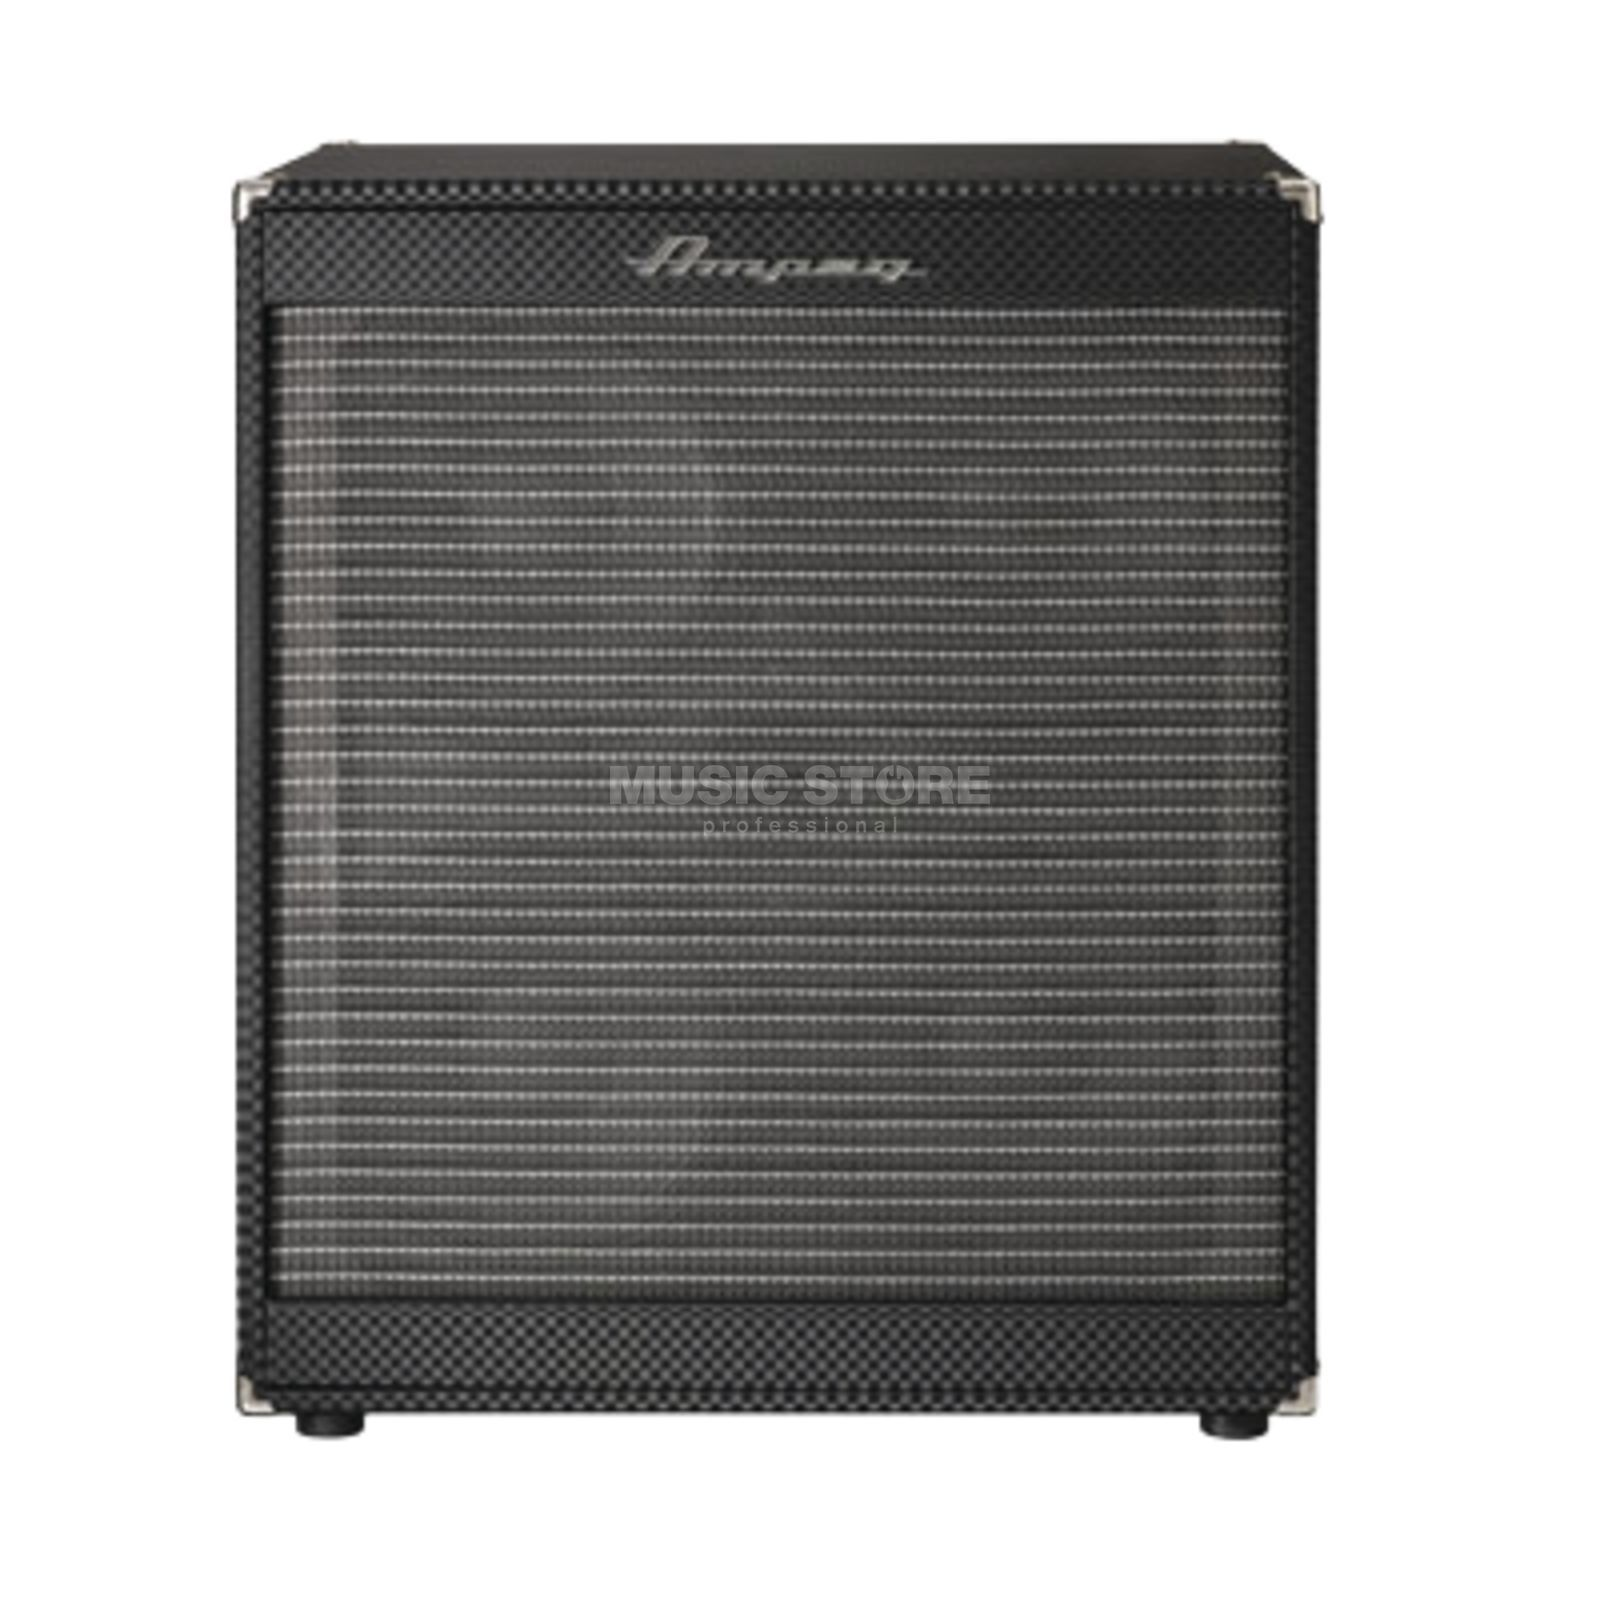 Ampeg PF-410HLF Bass Guitar Speaker  Cabinet   Product Image